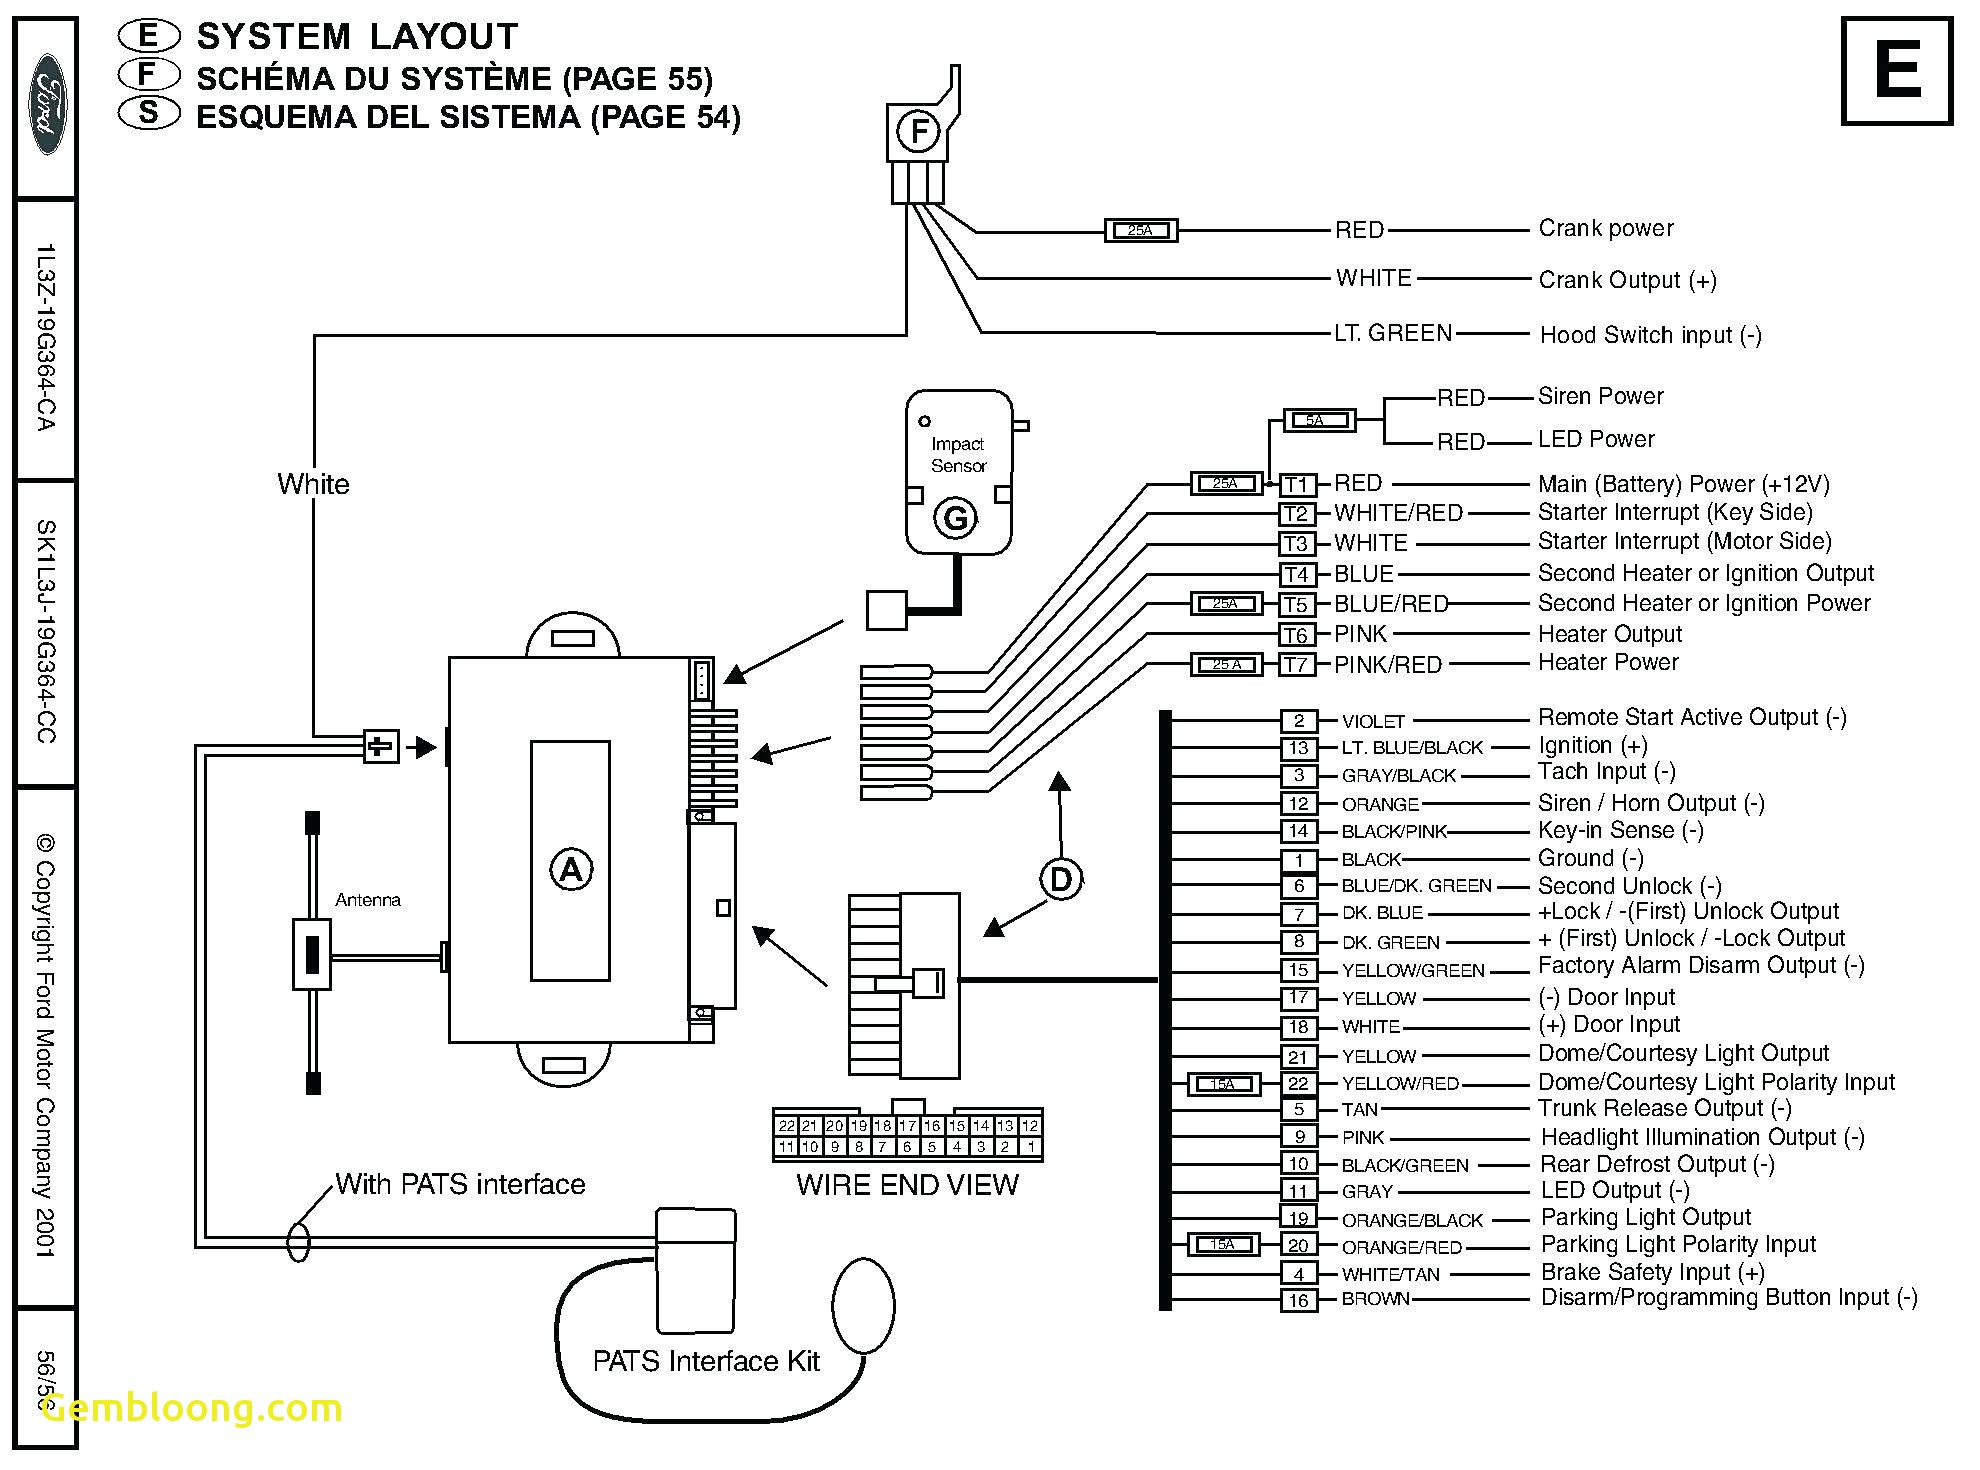 Ready Remote Wiring Diagram Expedition   Manual E-Books - Ready Remote Wiring Diagram